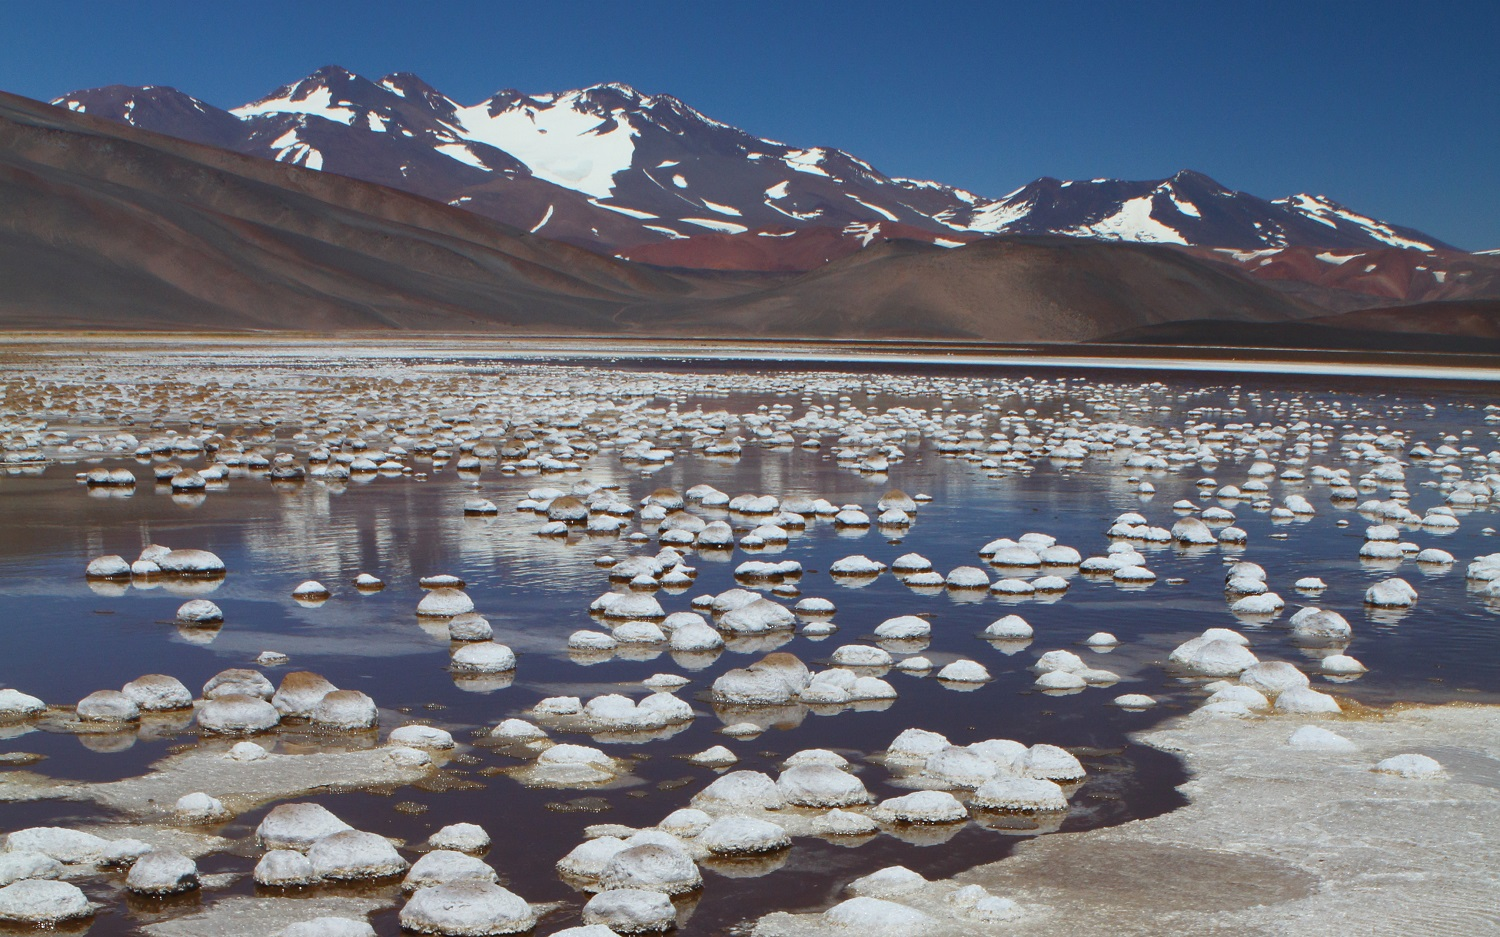 Bacteria survive in the harsh conditions of the Andean lakes of Argentina among high concentrations of arsenic.